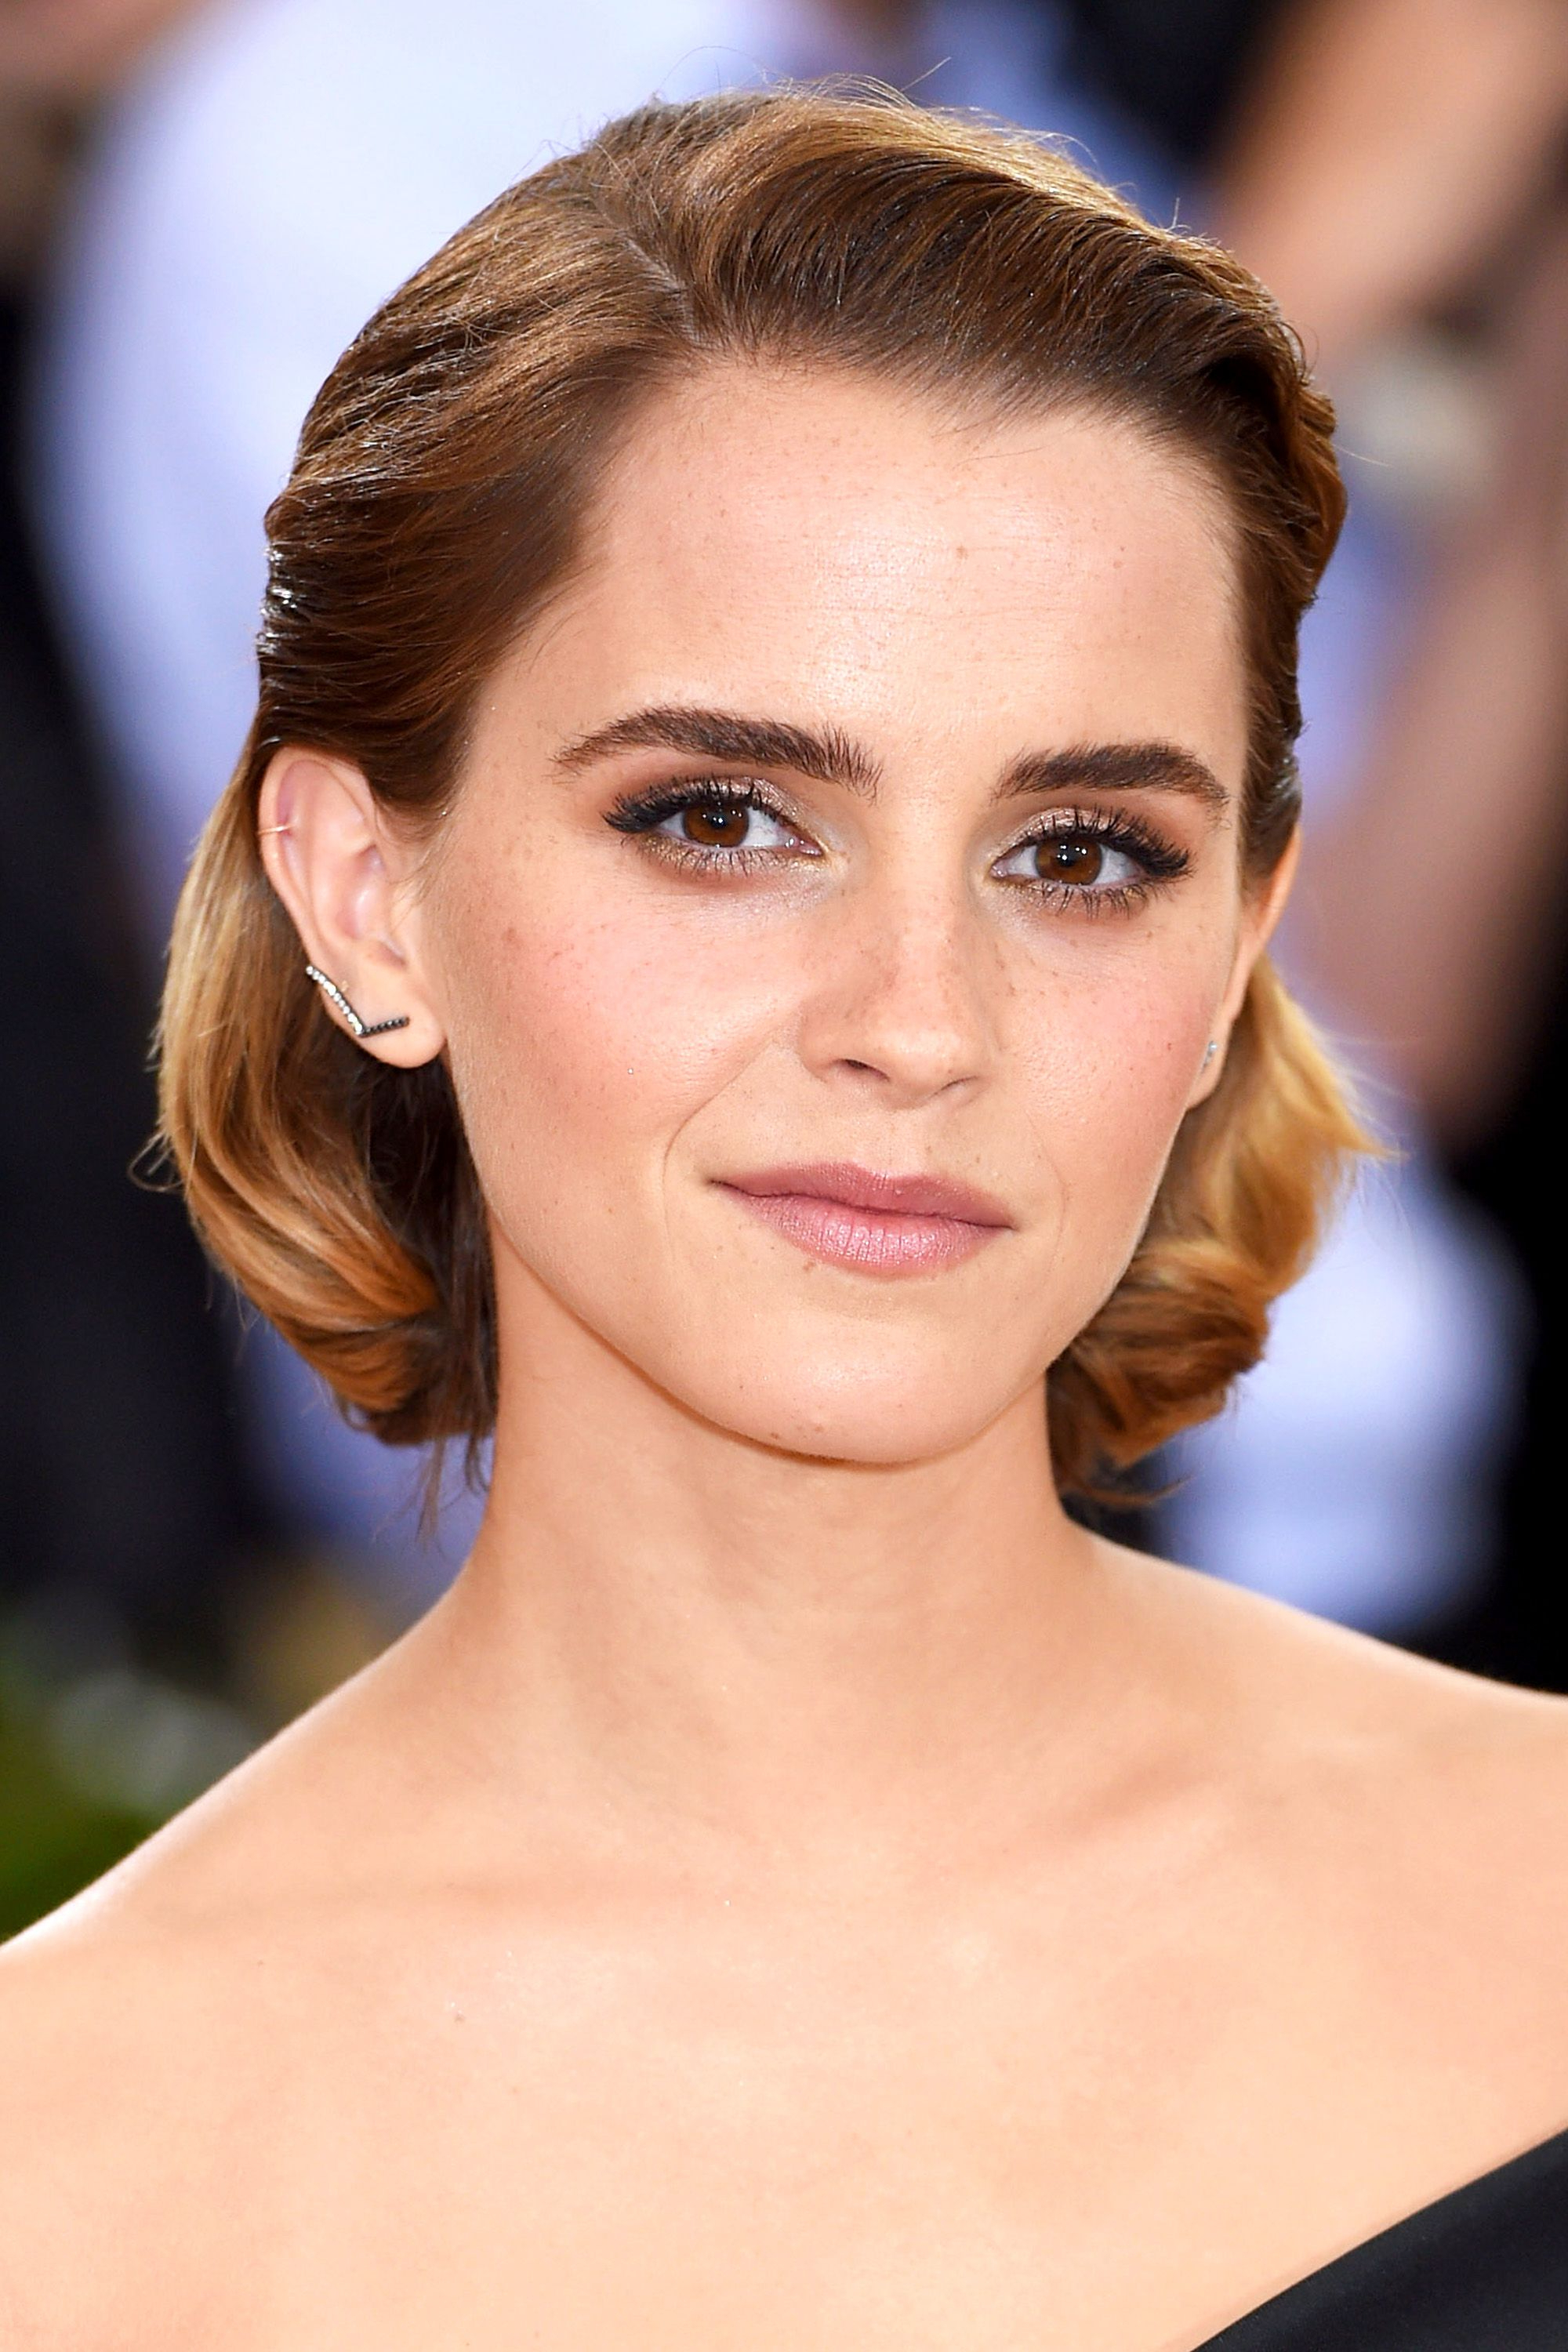 44 Best Short Hairstyles And Haircuts Of 2018 – Cute Hairstyles For Intended For Cute Shaggy Short Haircuts (View 9 of 25)